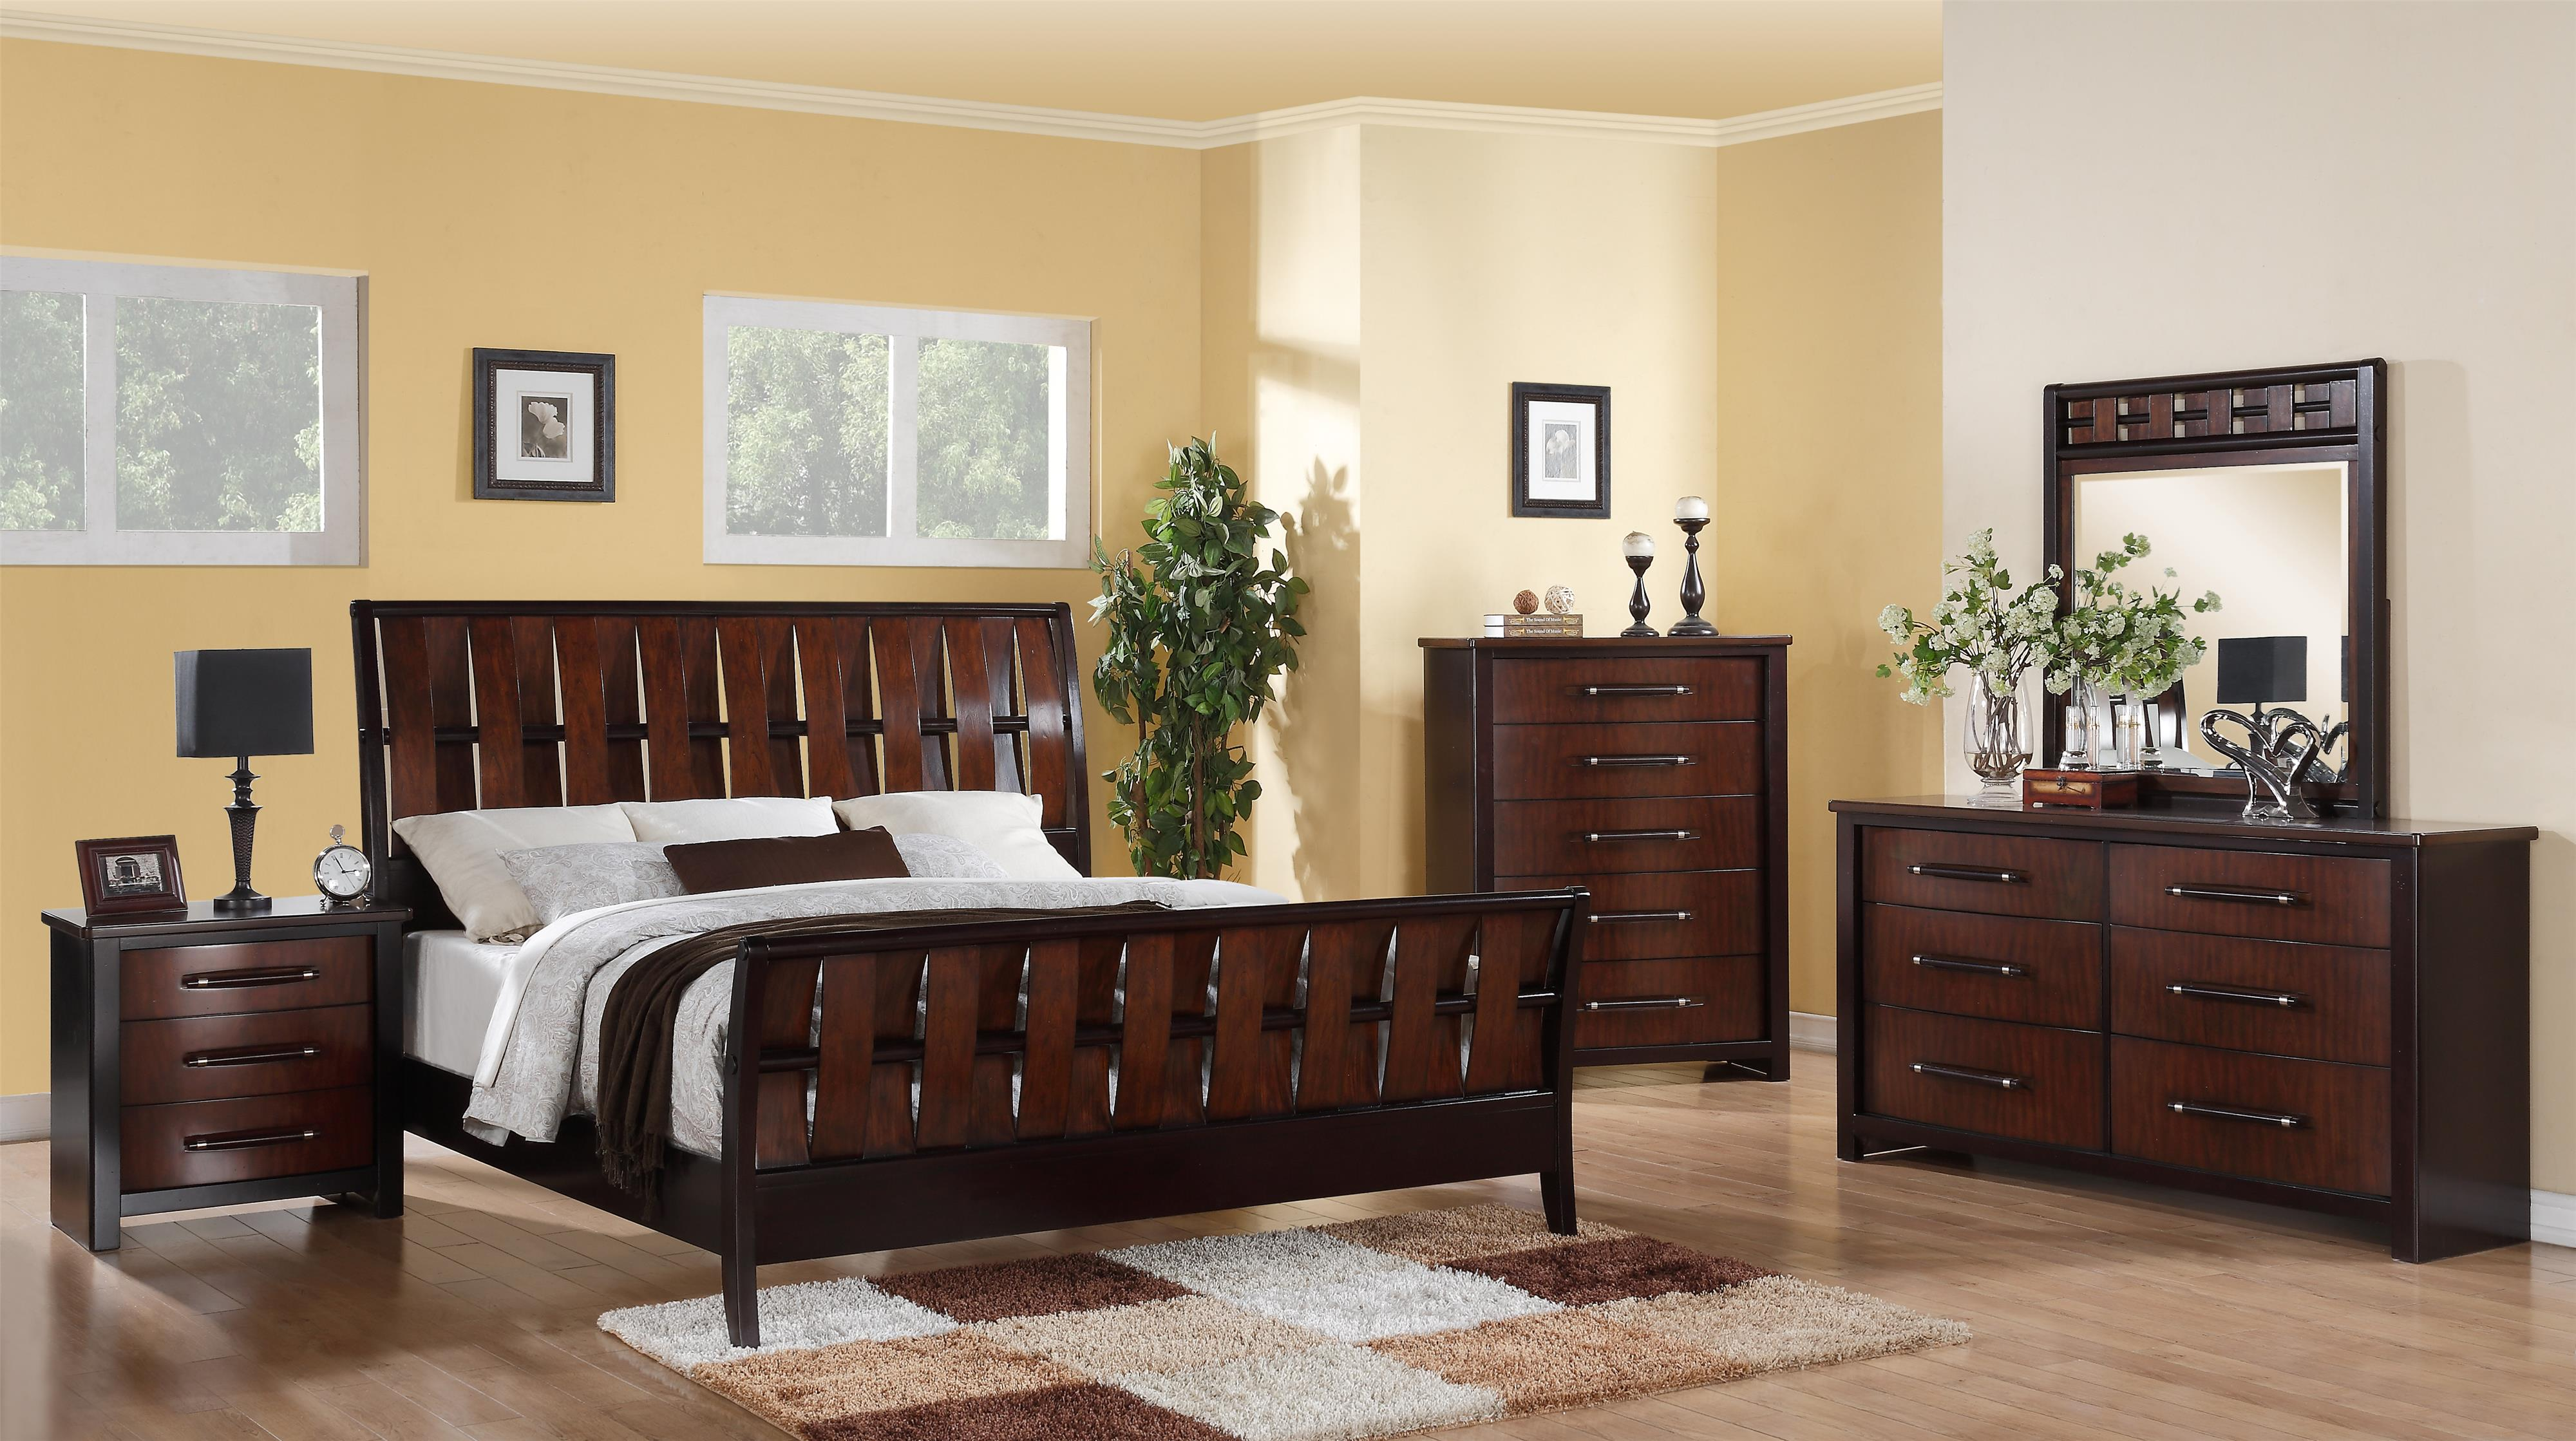 Austin Group Cavalier Queen Bed   Royal Furniture   Headboard   Footboard  Memphis  Jackson  Nashville  Cordova  Tennessee  Southaven  Mississippi. Austin Group Cavalier Queen Bed   Royal Furniture   Headboard